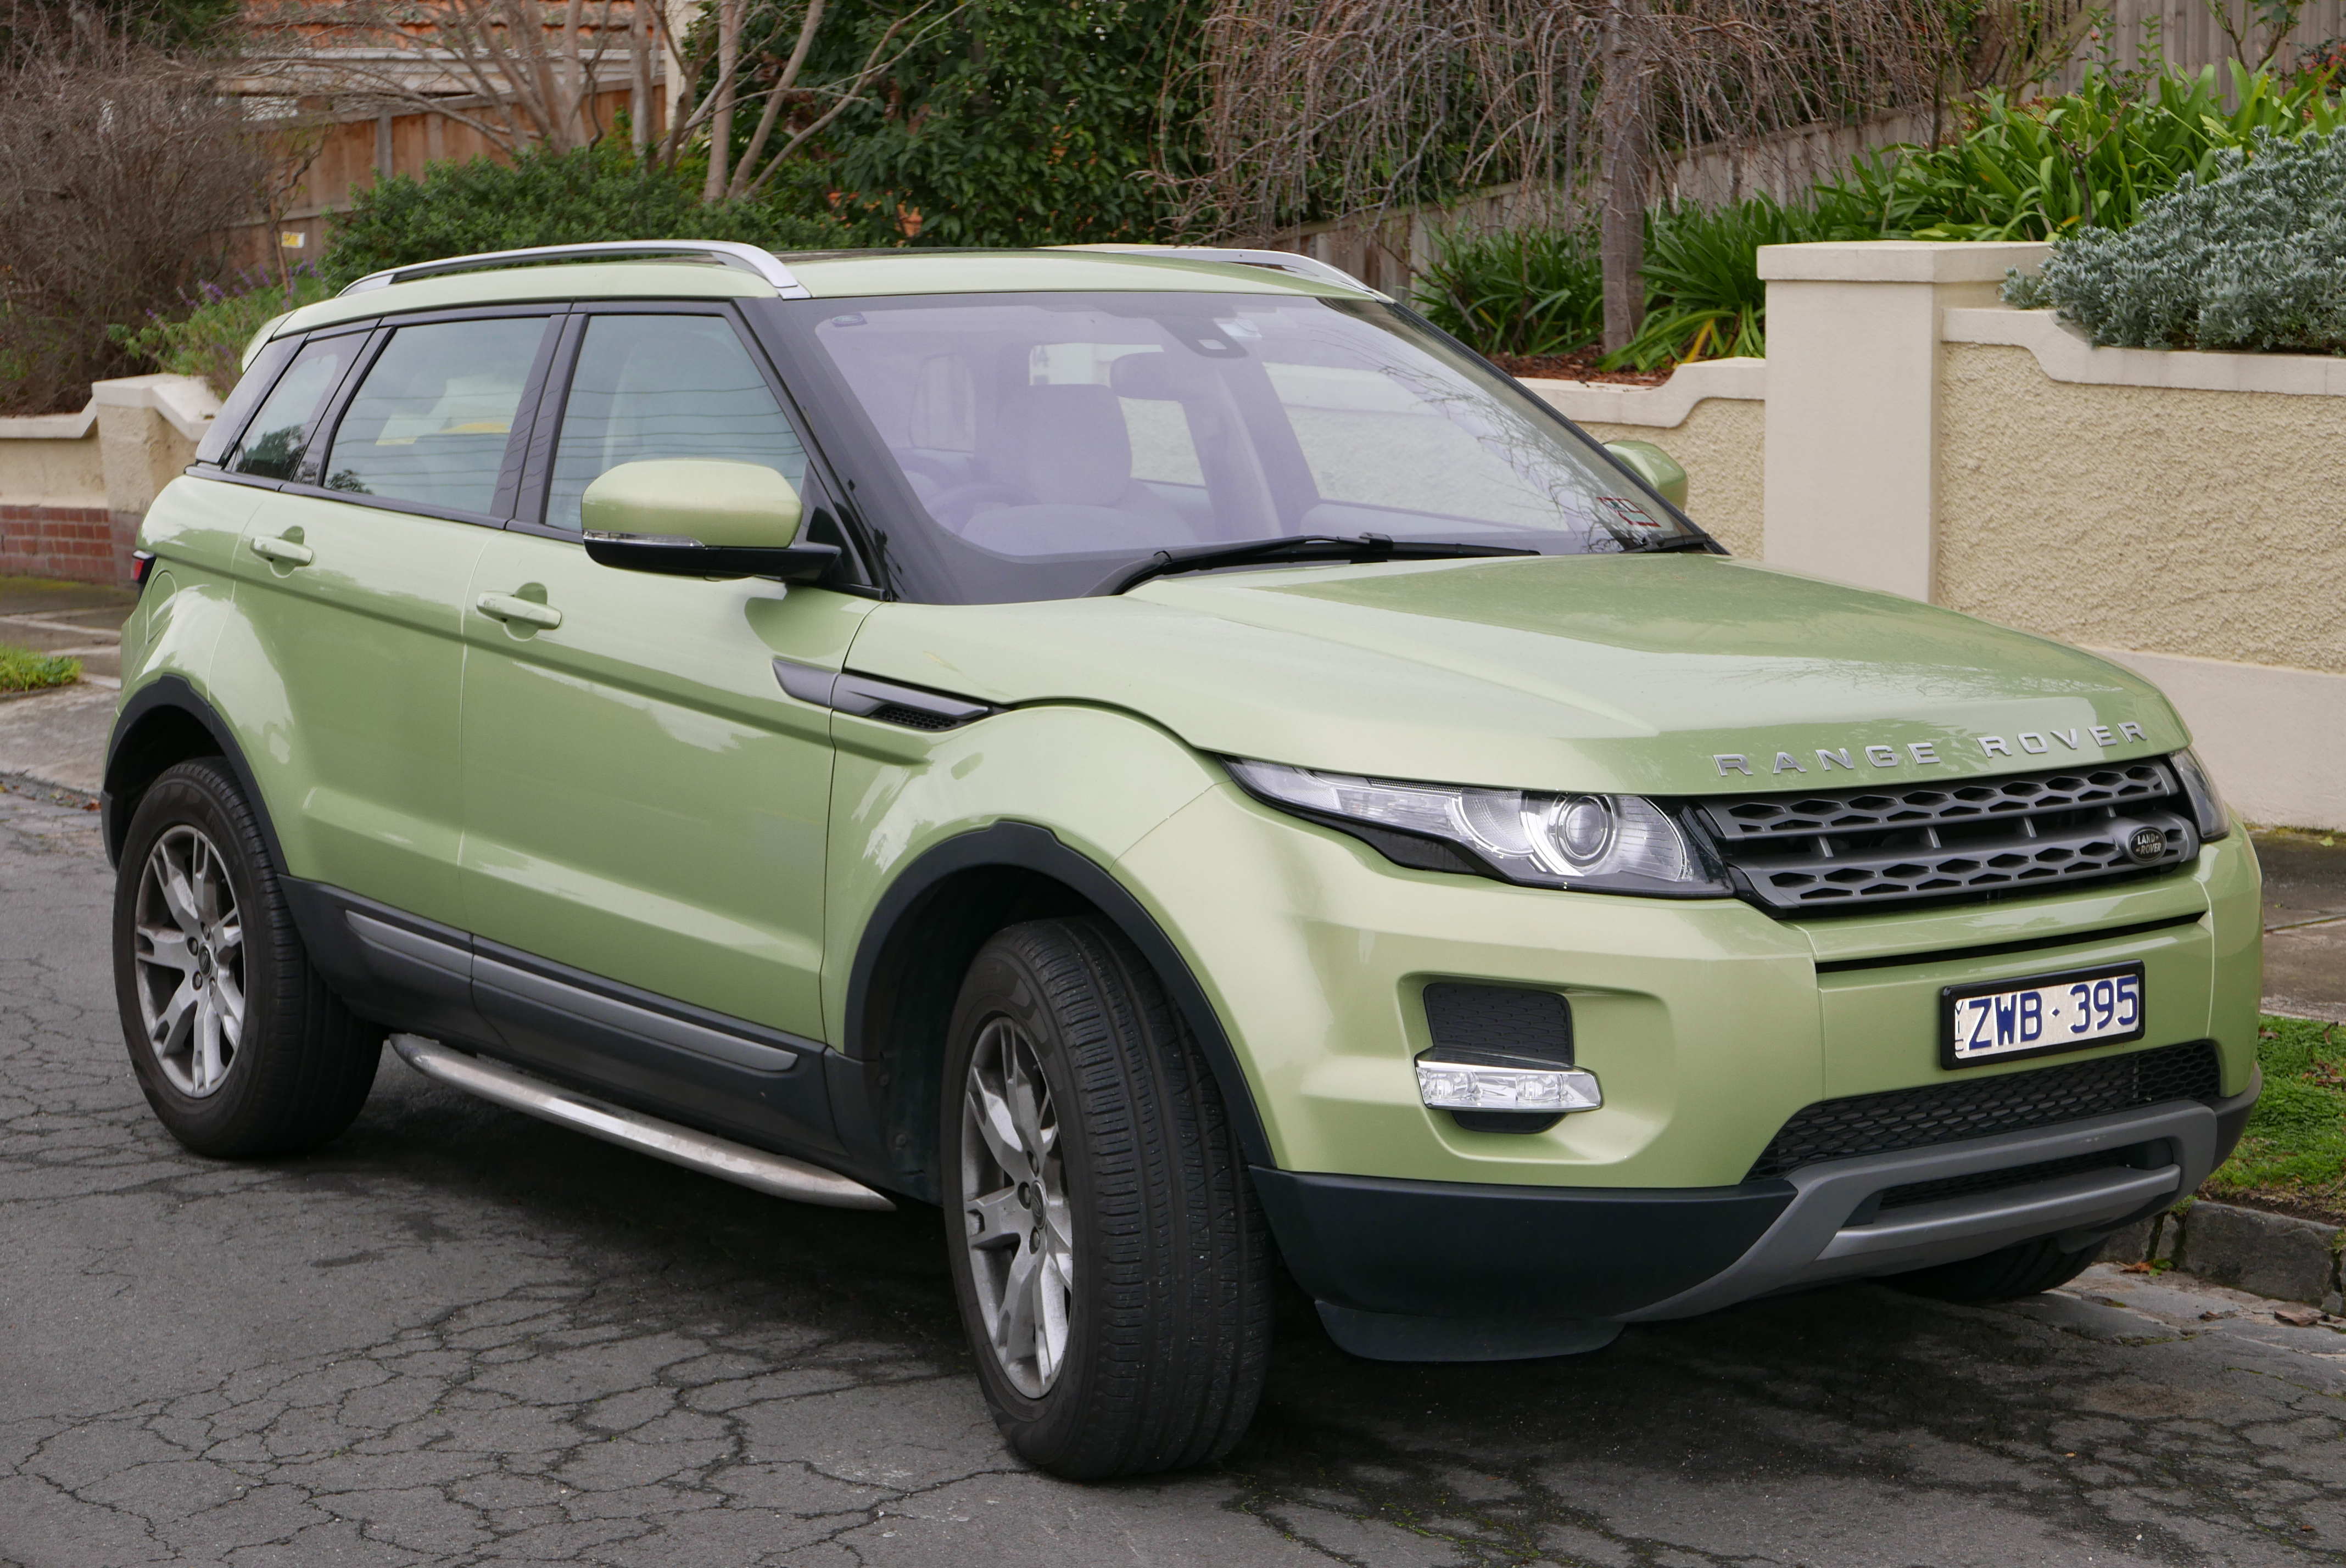 file 2013 land rover range rover evoque l538 my13 sd4 pure 4wd 5 door wagon 2015 07 24 01. Black Bedroom Furniture Sets. Home Design Ideas